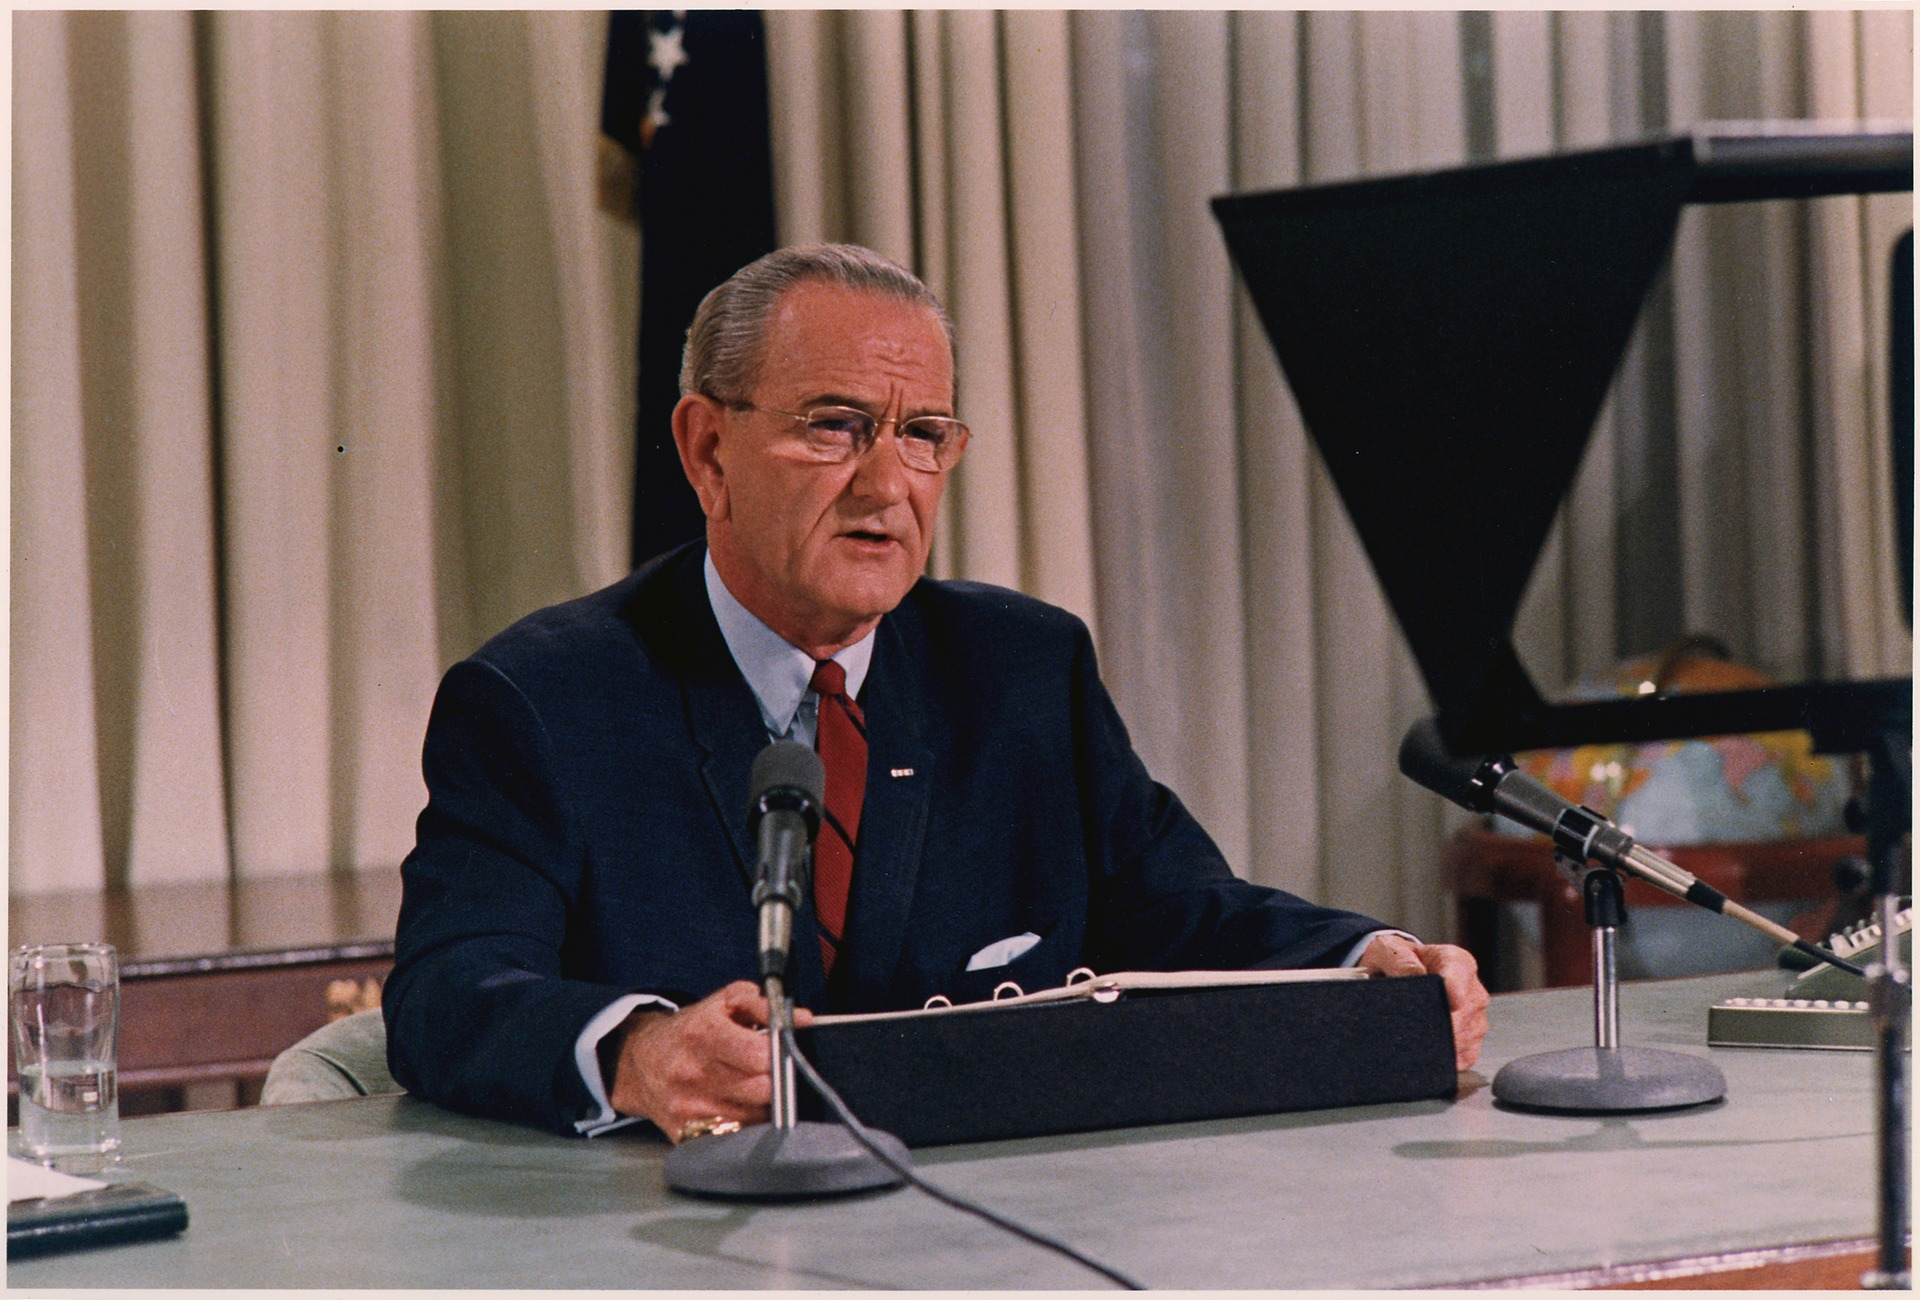 https://upload.wikimedia.org/wikipedia/commons/thumb/8/85/President_Lyndon_B._Johnson_speech_re_bombing_halt_and_decision_not_to_run_for_re-election_-_NARA_-_192620.tif/lossy-page1-1920px-President_Lyndon_B._Johnson_speech_re_bombing_halt_and_decision_not_to_run_for_re-election_-_NARA_-_192620.tif.jpg